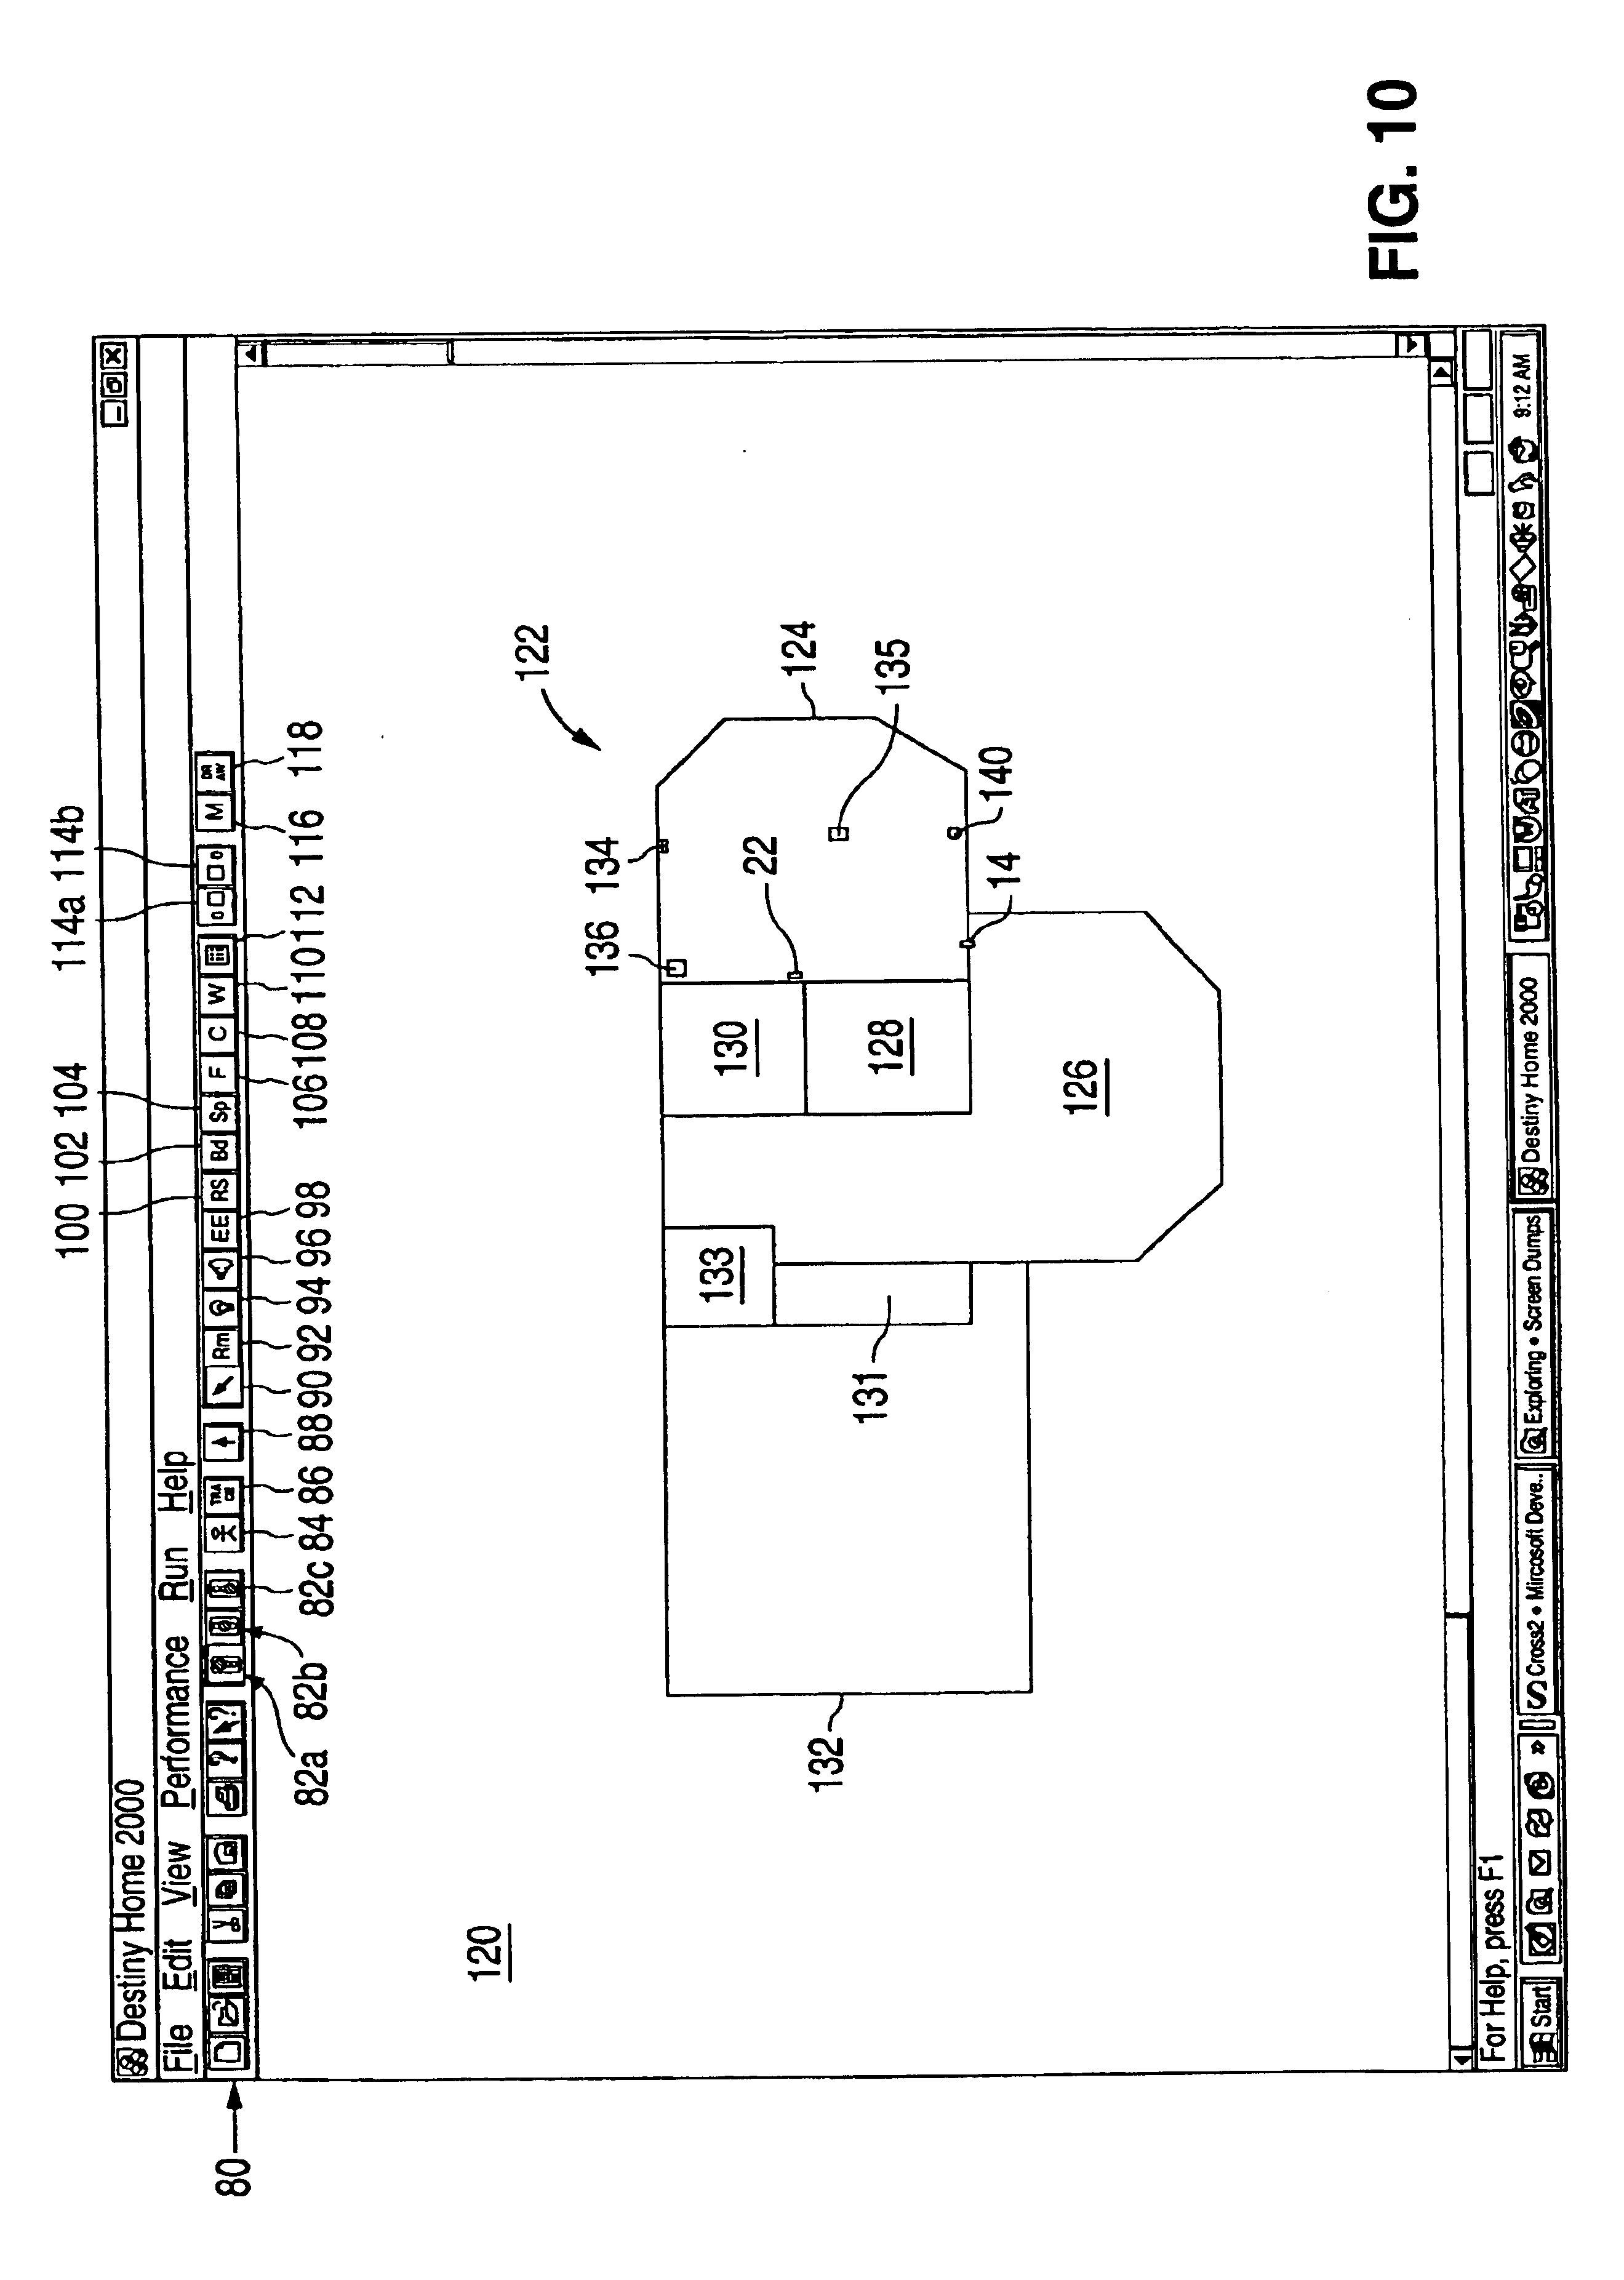 Patent Us6909921 Occupancy Sensor And Method For Home Automation Drawing Force Diagrams Worksheet Answers Free Printable Math